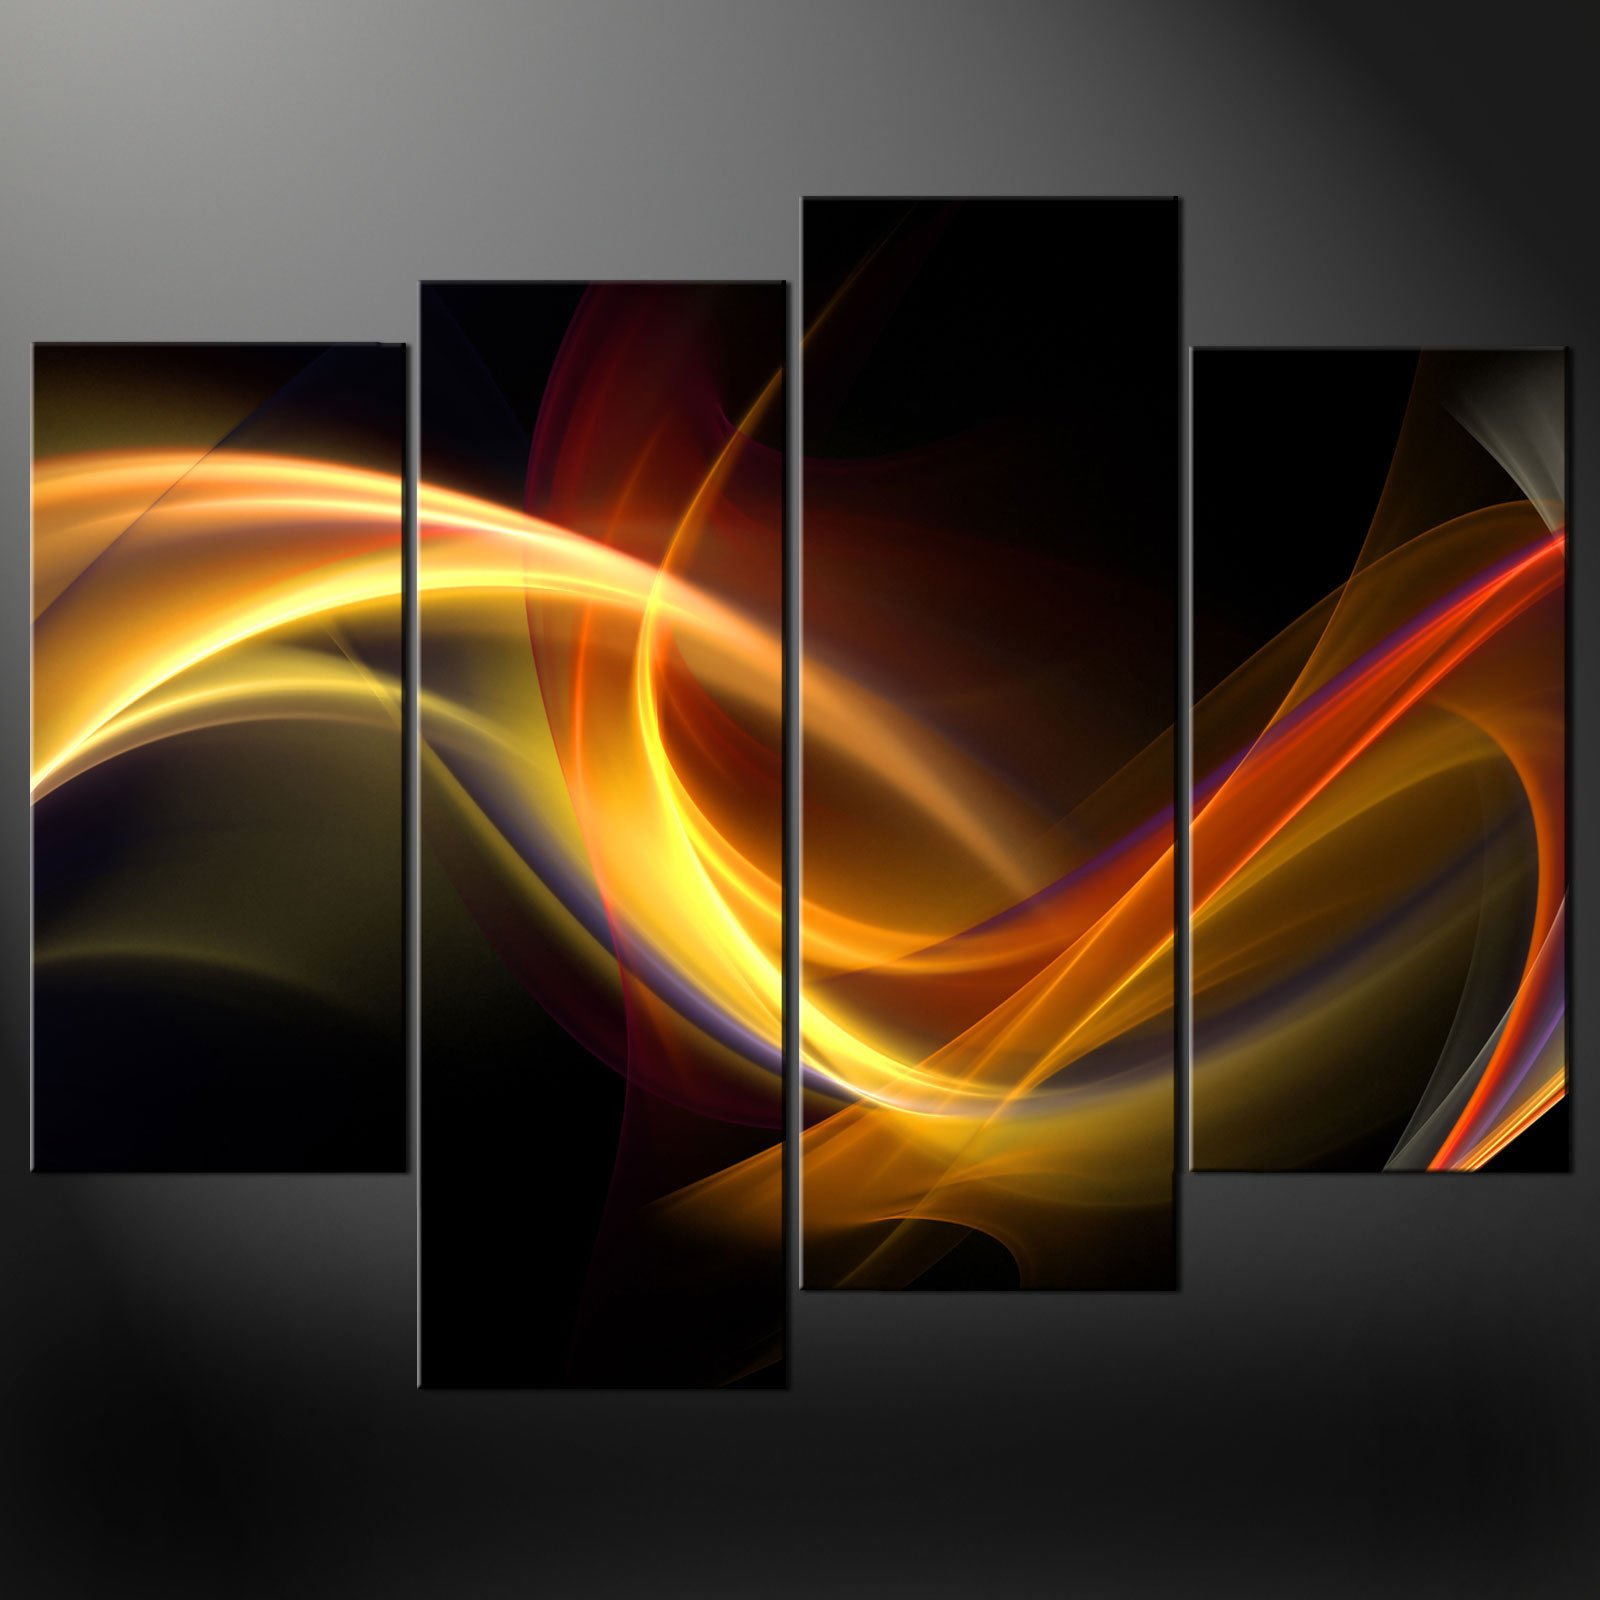 ABSTRACT LIGHTS CANVAS PRINT PICTURE WALL ART